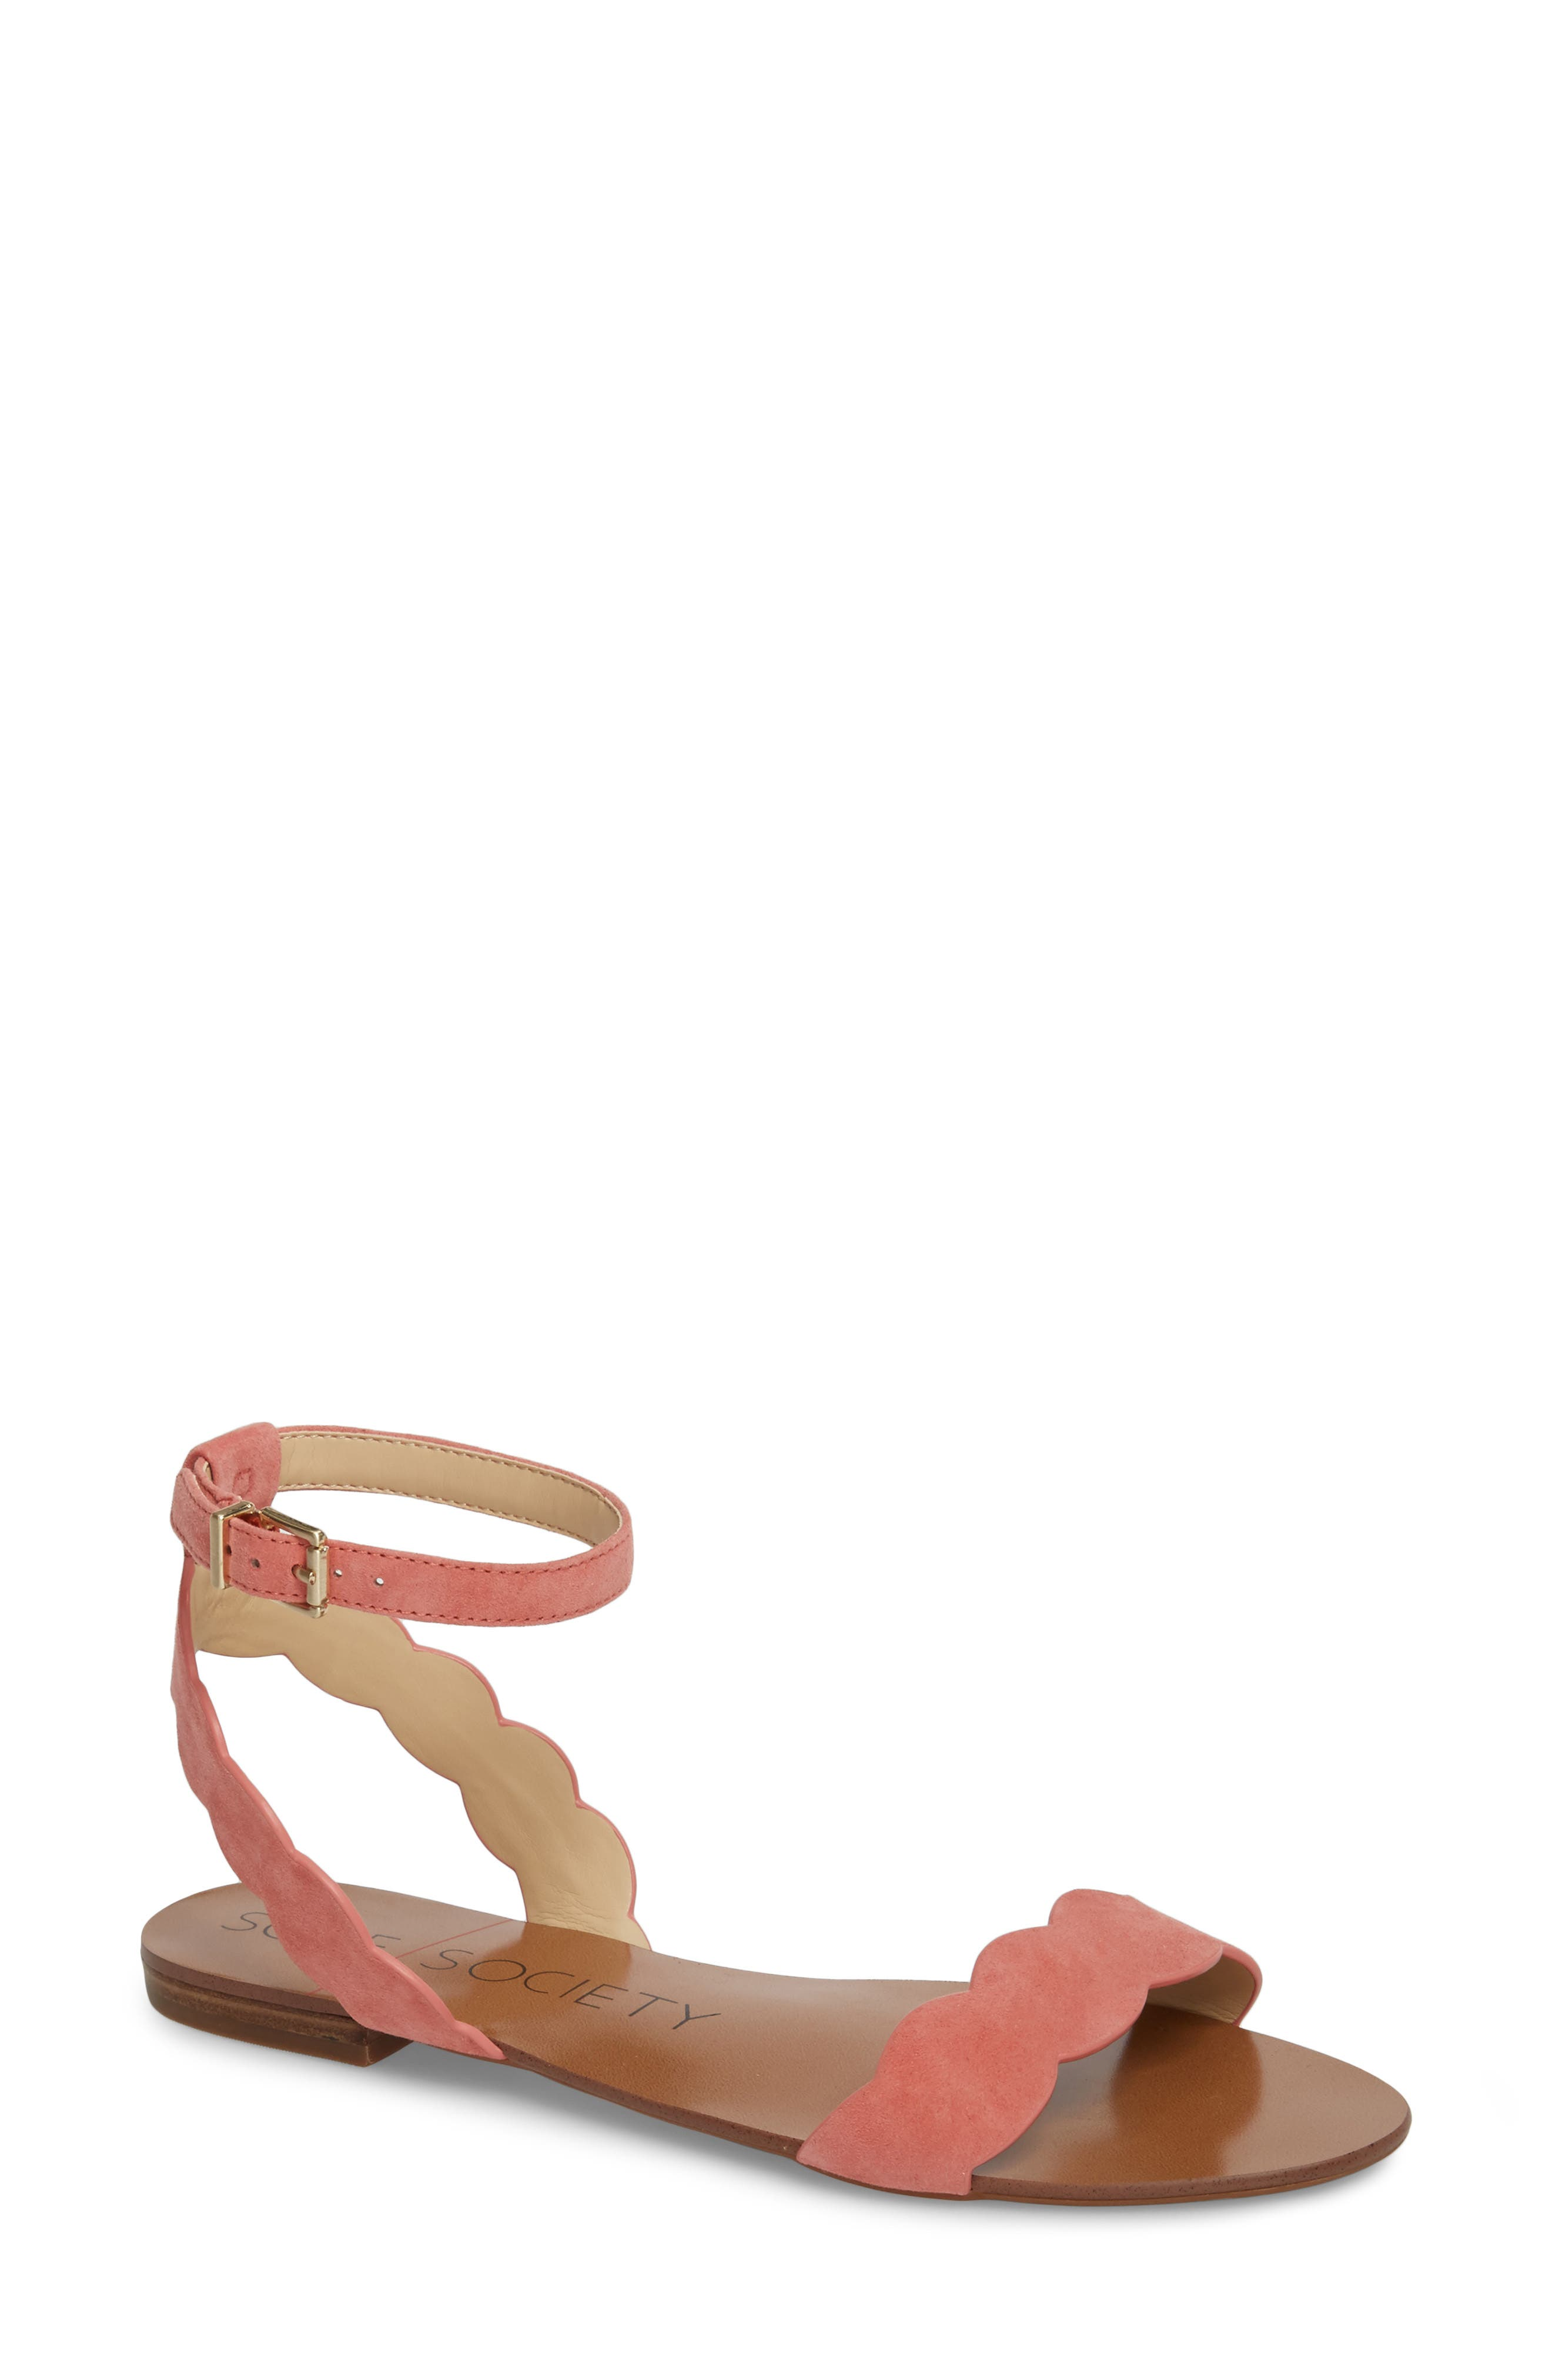 Main Image - Sole Society 'Odette' Scalloped Ankle Strap Flat Sandal (Women)